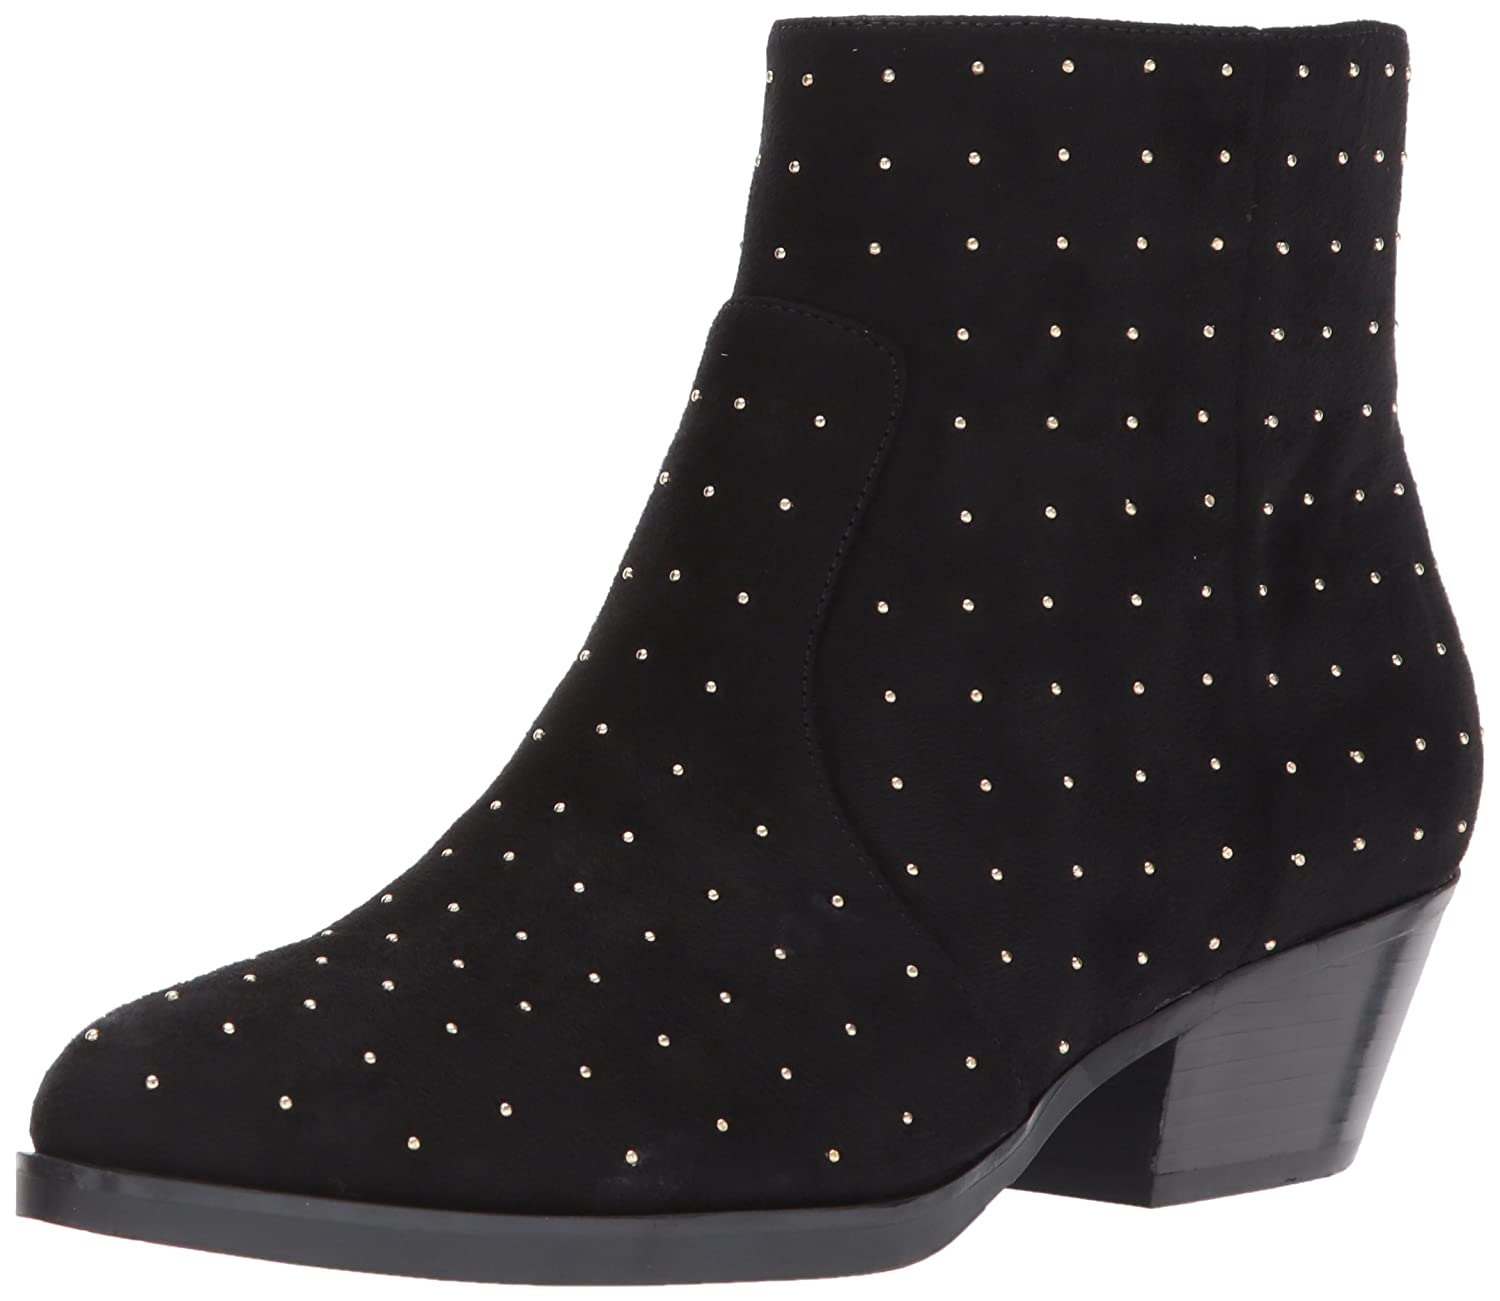 GUESS Women's Visen2 Ankle Boot B071HXDY47 7.5 B(M) US Black